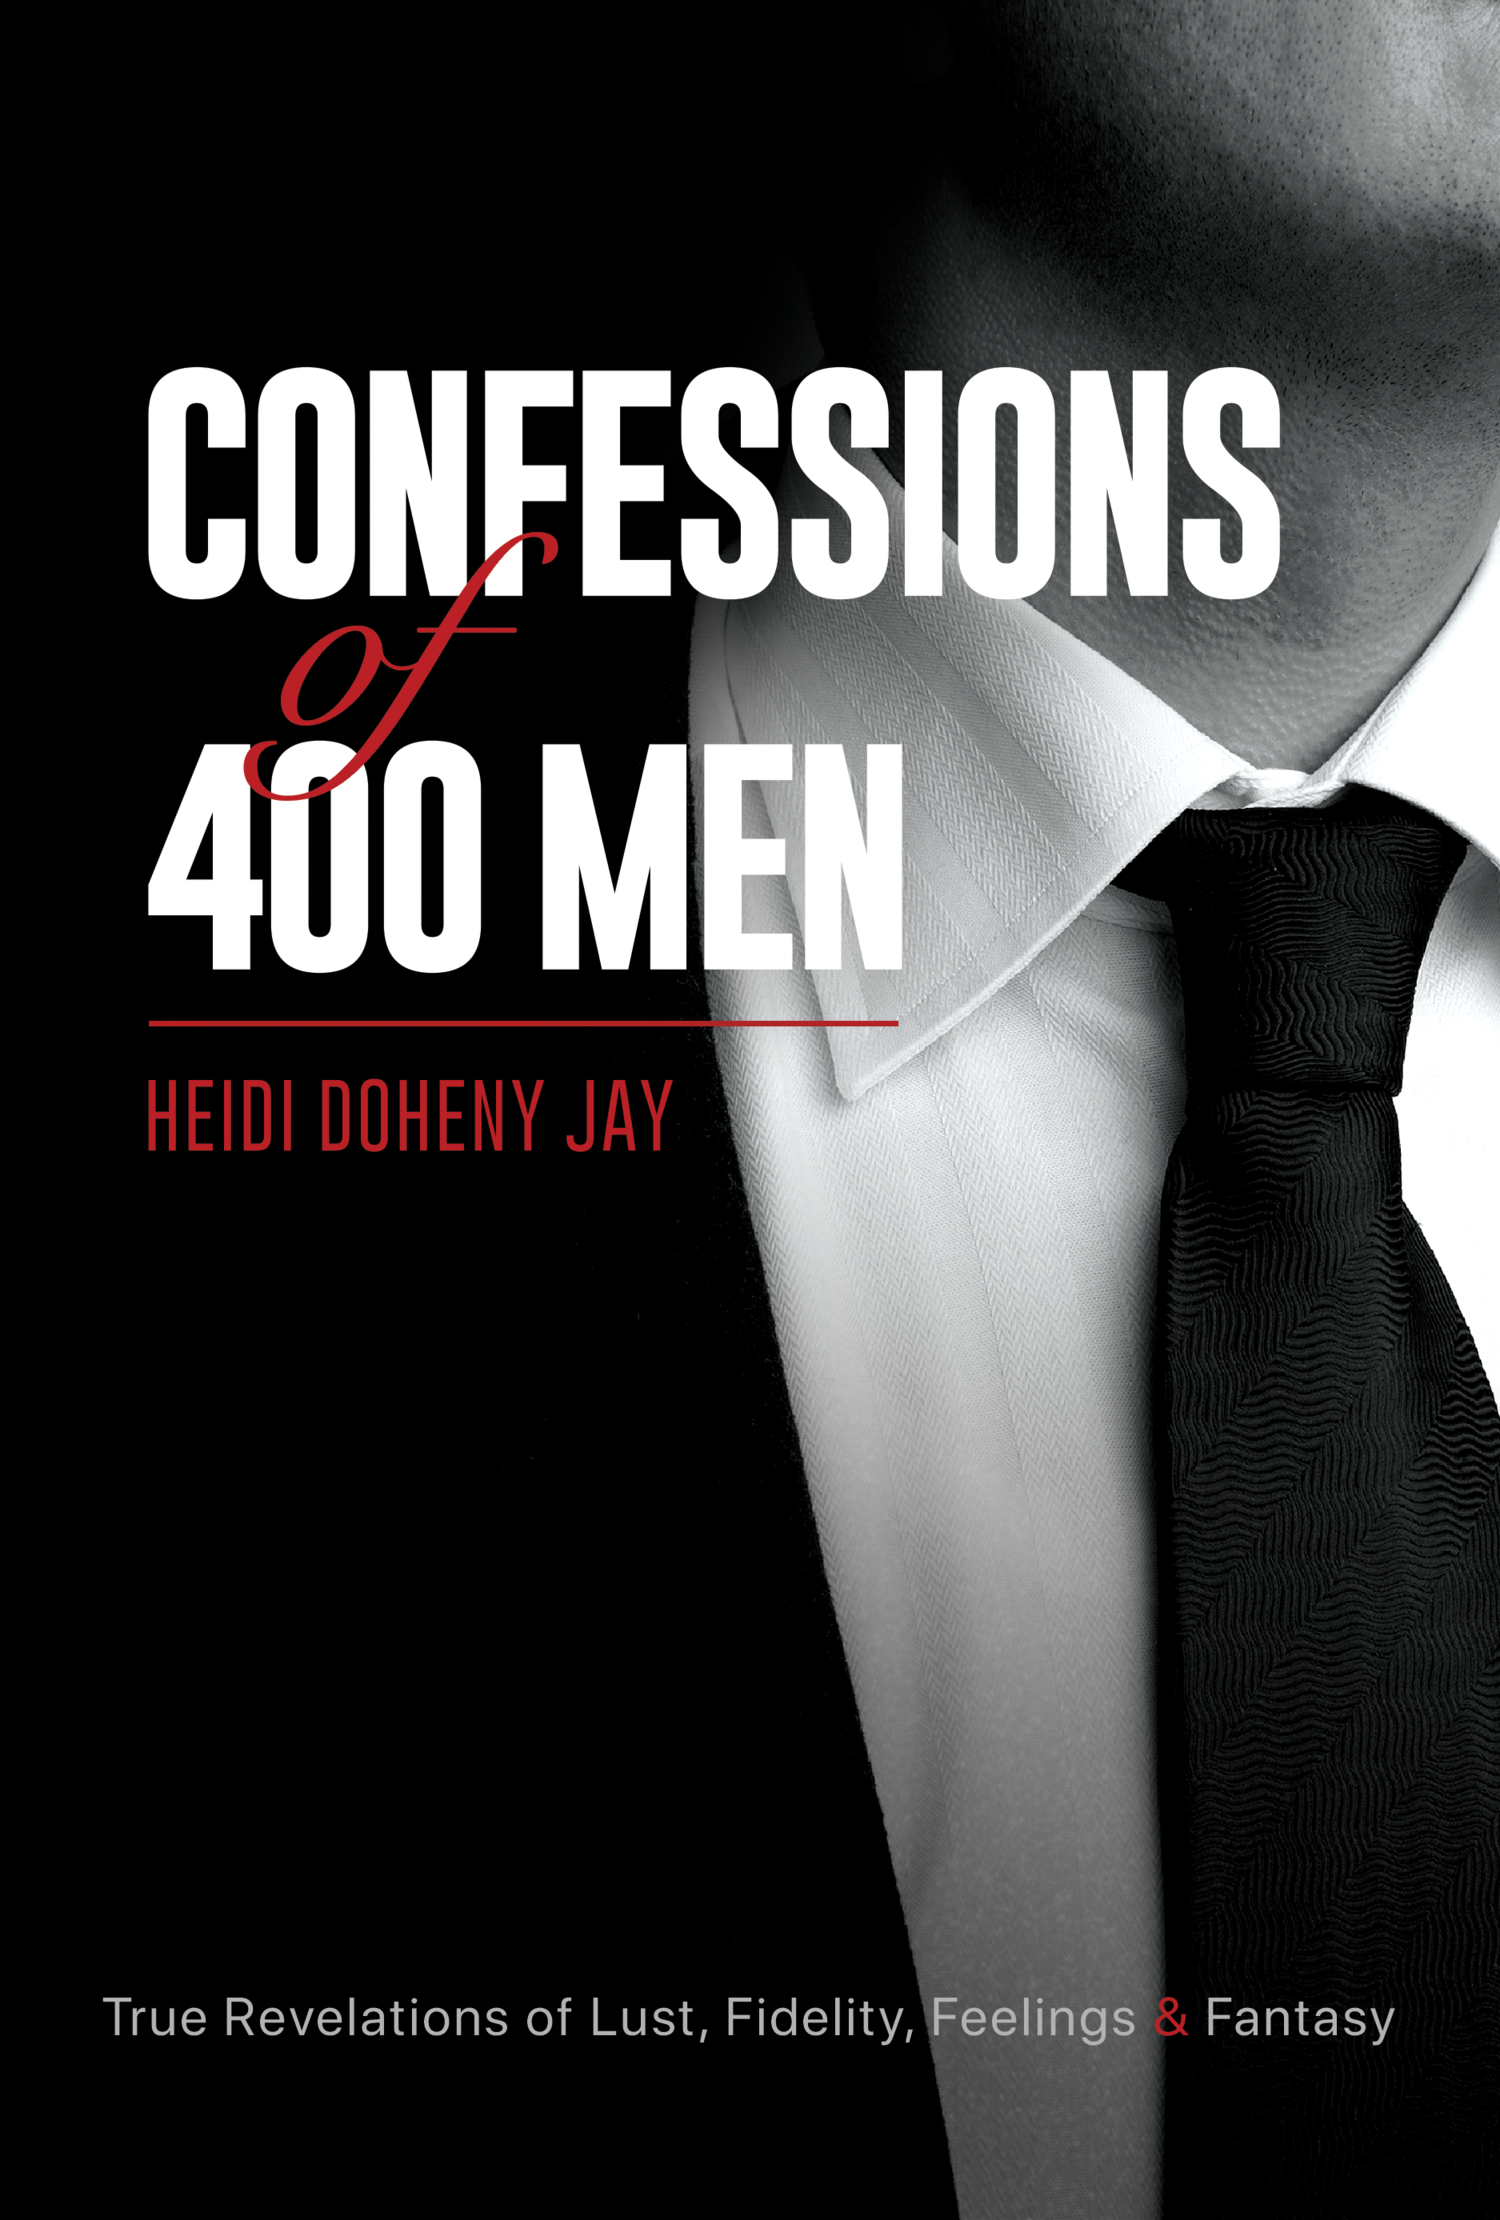 Confessions of 400 Men: True Revelations of Lust, Fidelity, Feelings & Fantasy